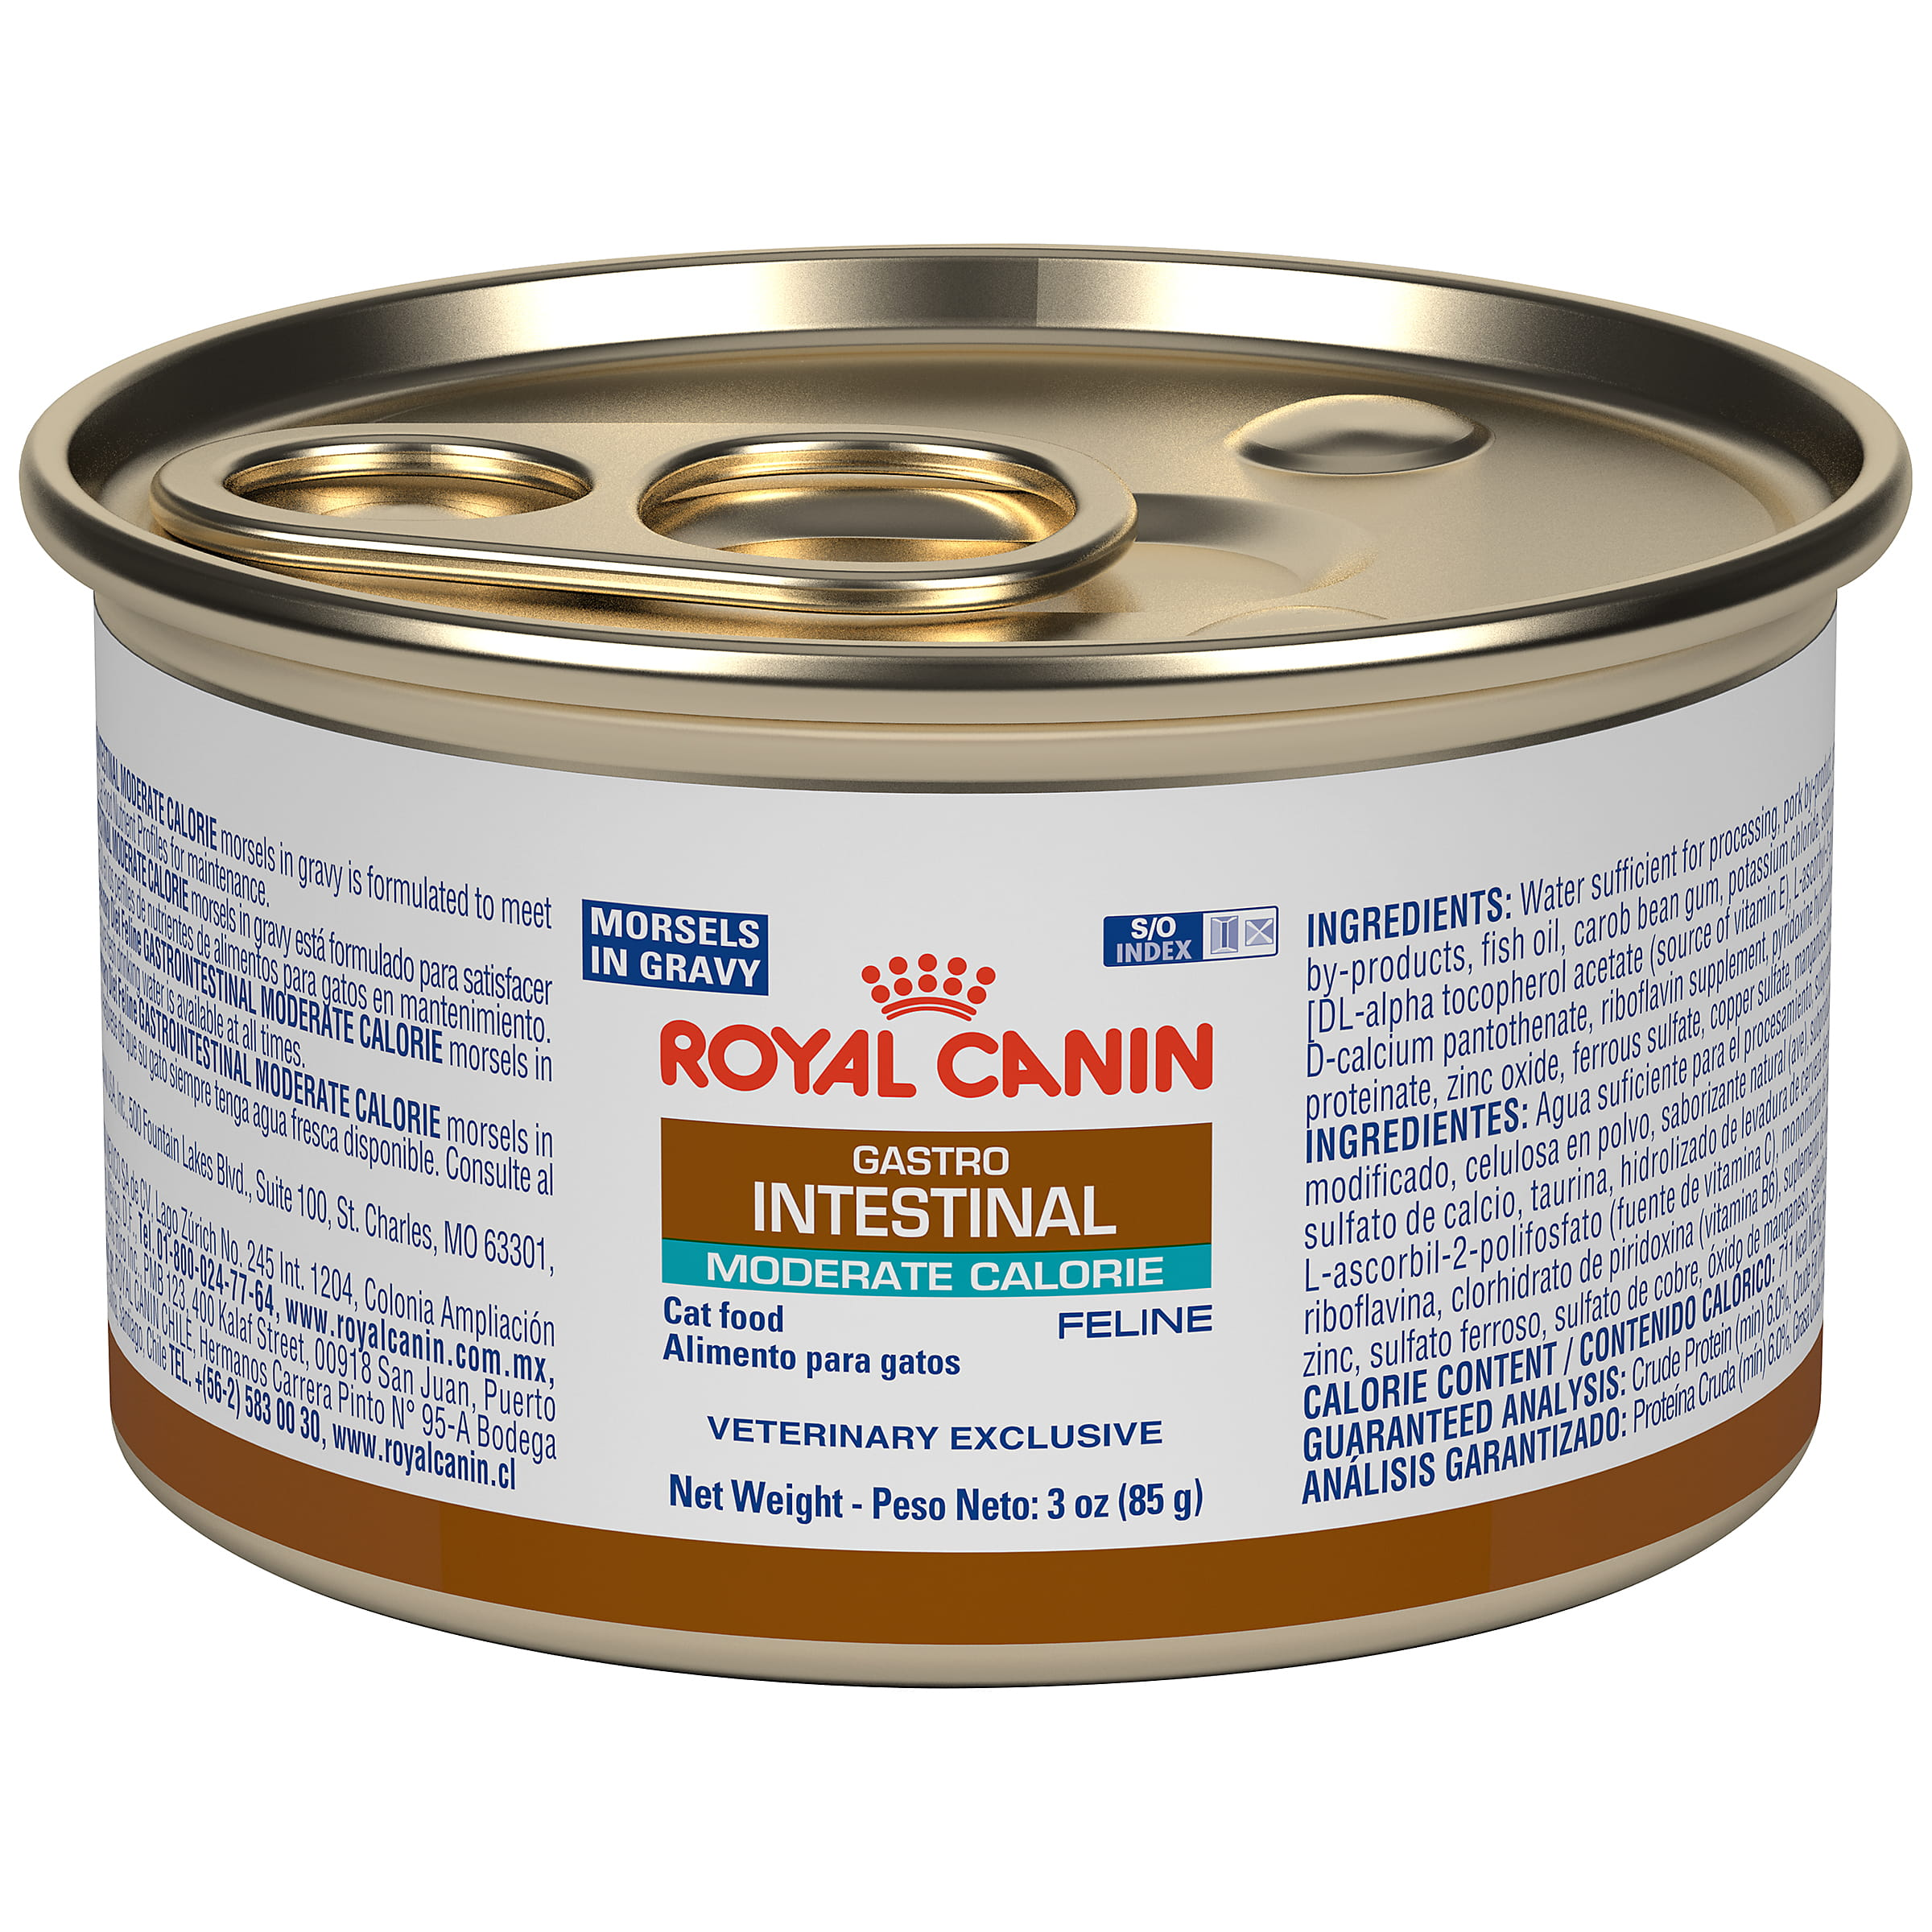 Royal Canin Veterinary Diet Feline Gastrointestinal Moderate Calorie Morsels In Gravy Canned Cat Food